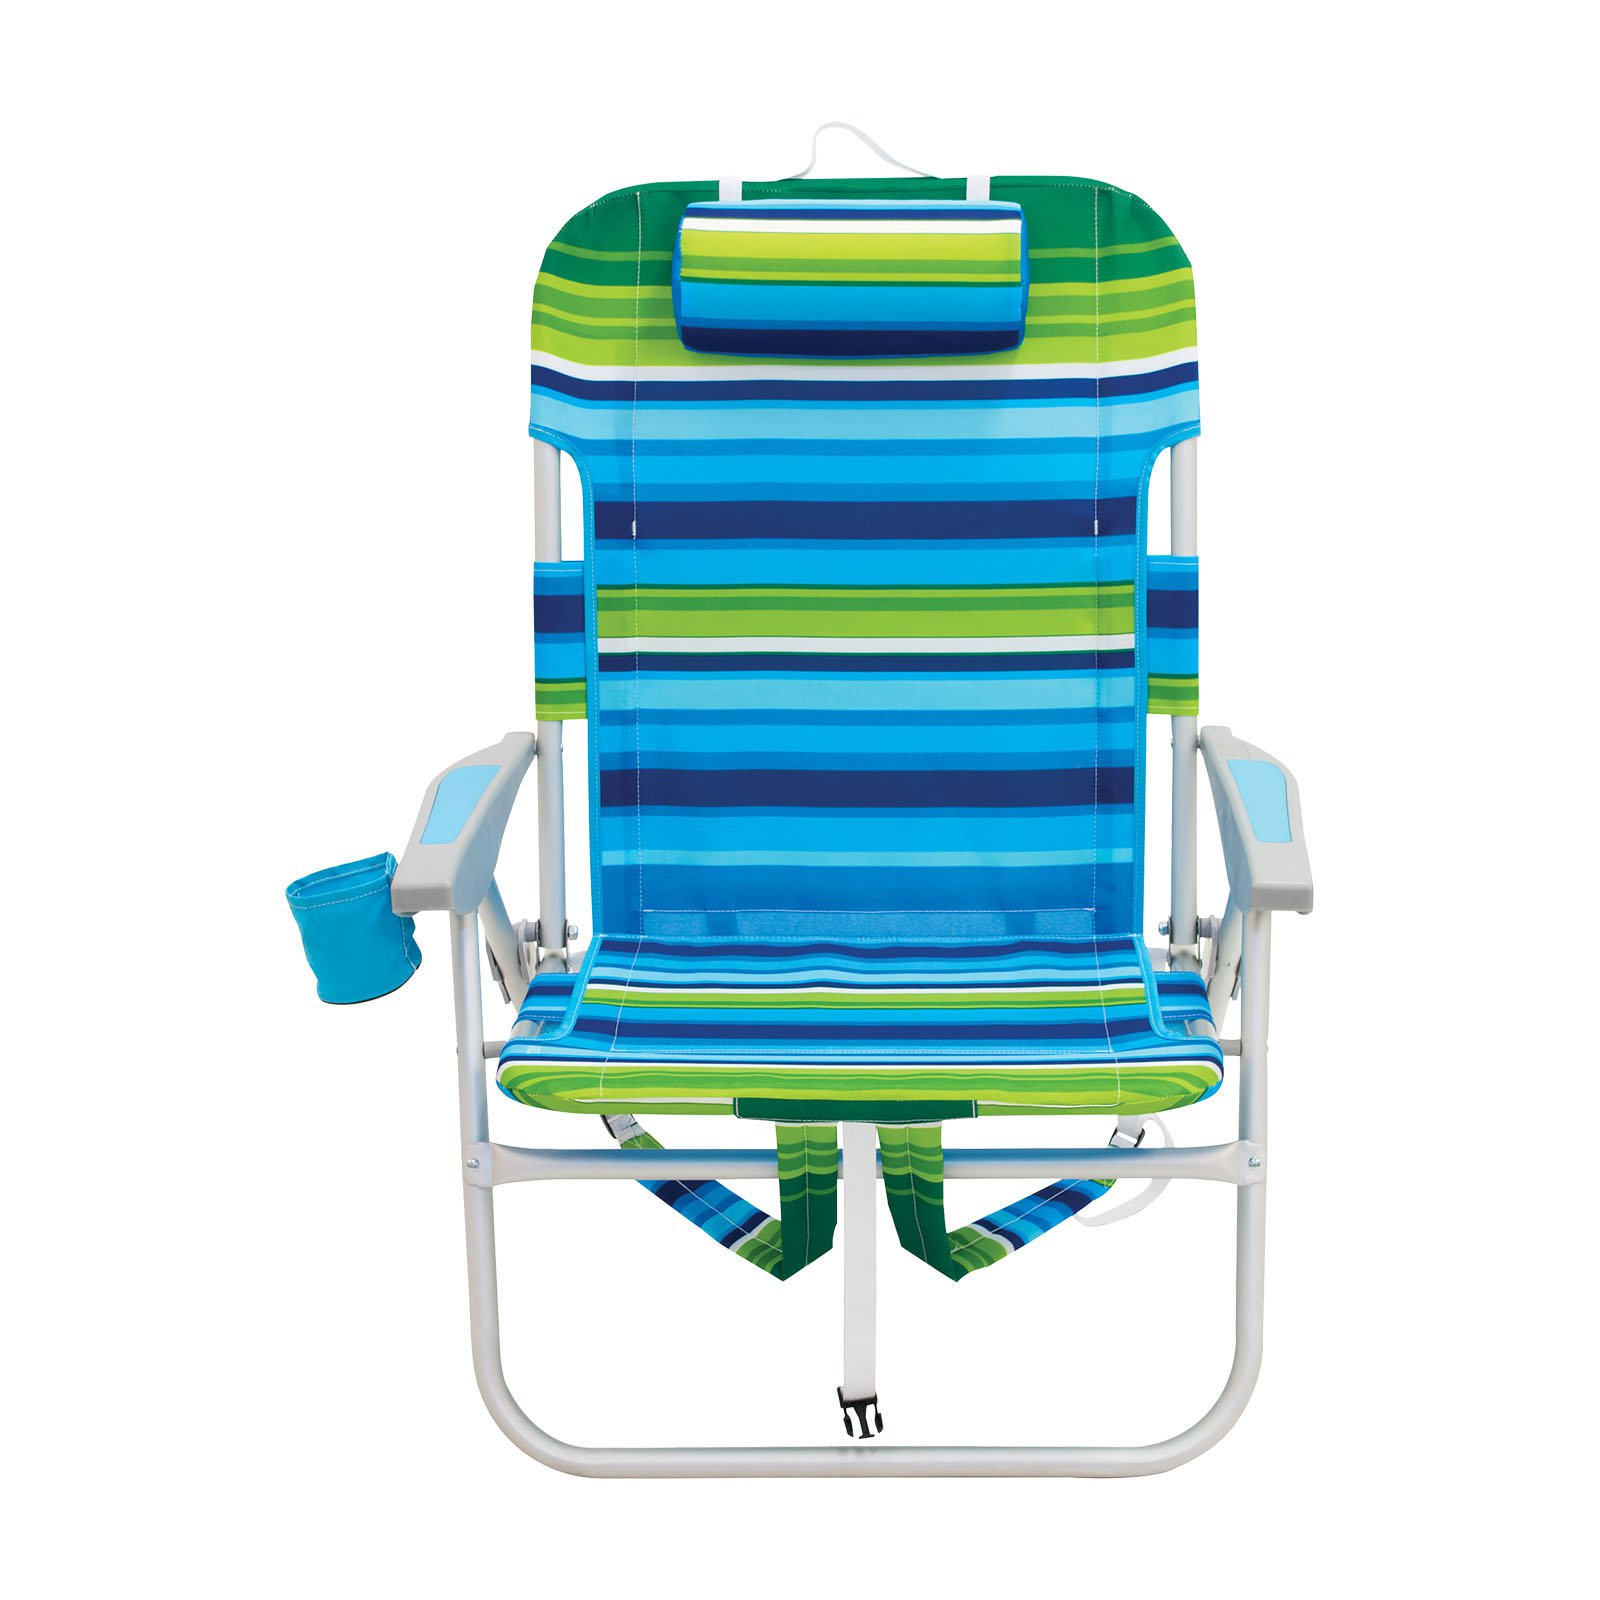 Phenomenal Outdoor Rio Brands Big Boy Beach Backpack Chair Products Ibusinesslaw Wood Chair Design Ideas Ibusinesslaworg